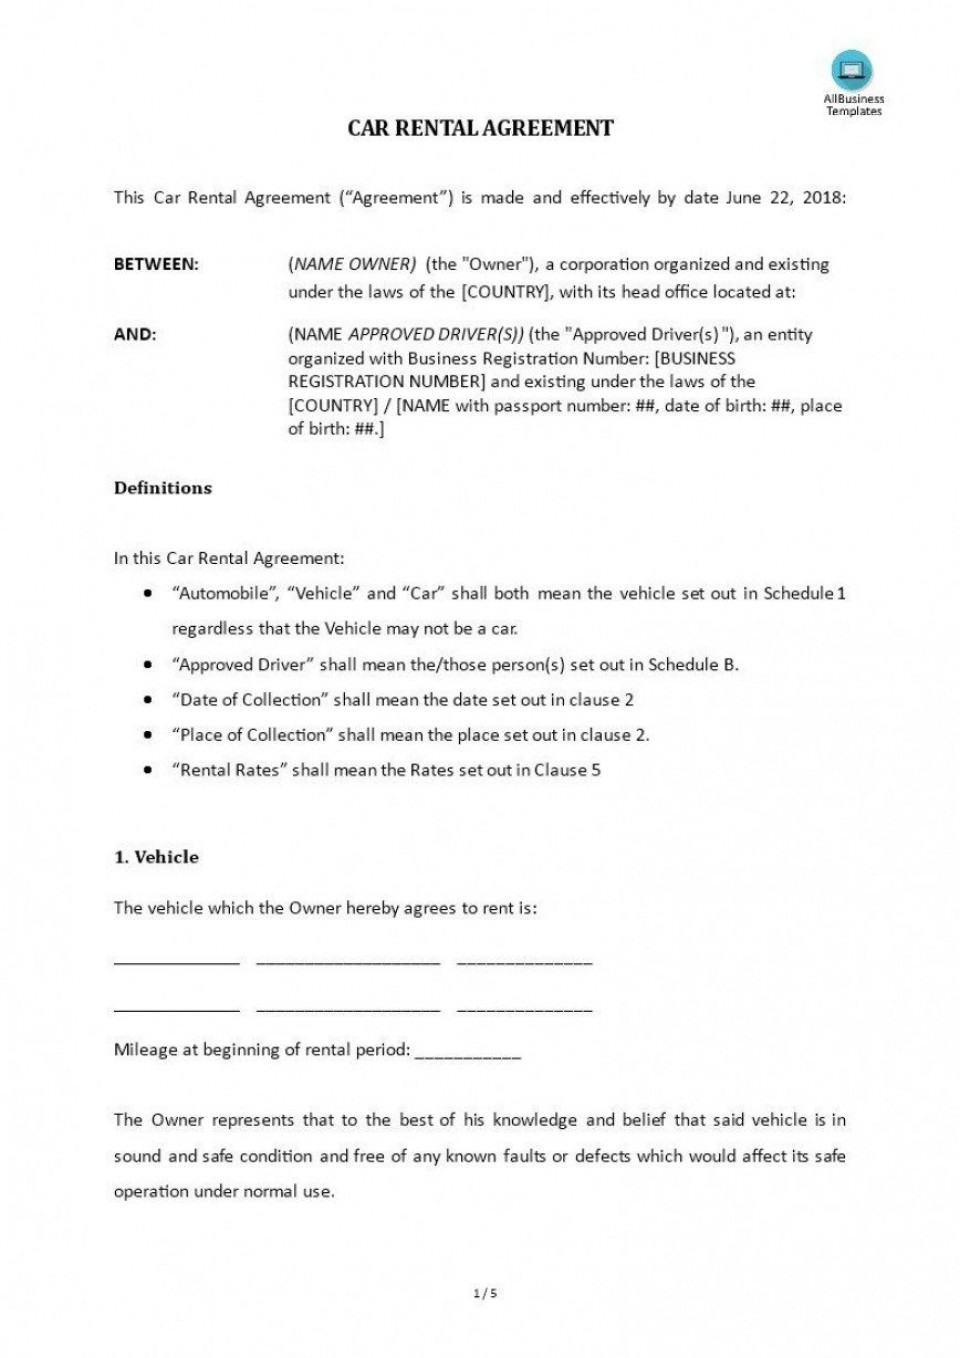 006 Impressive Template For Car Hire Agreement Highest Clarity 960